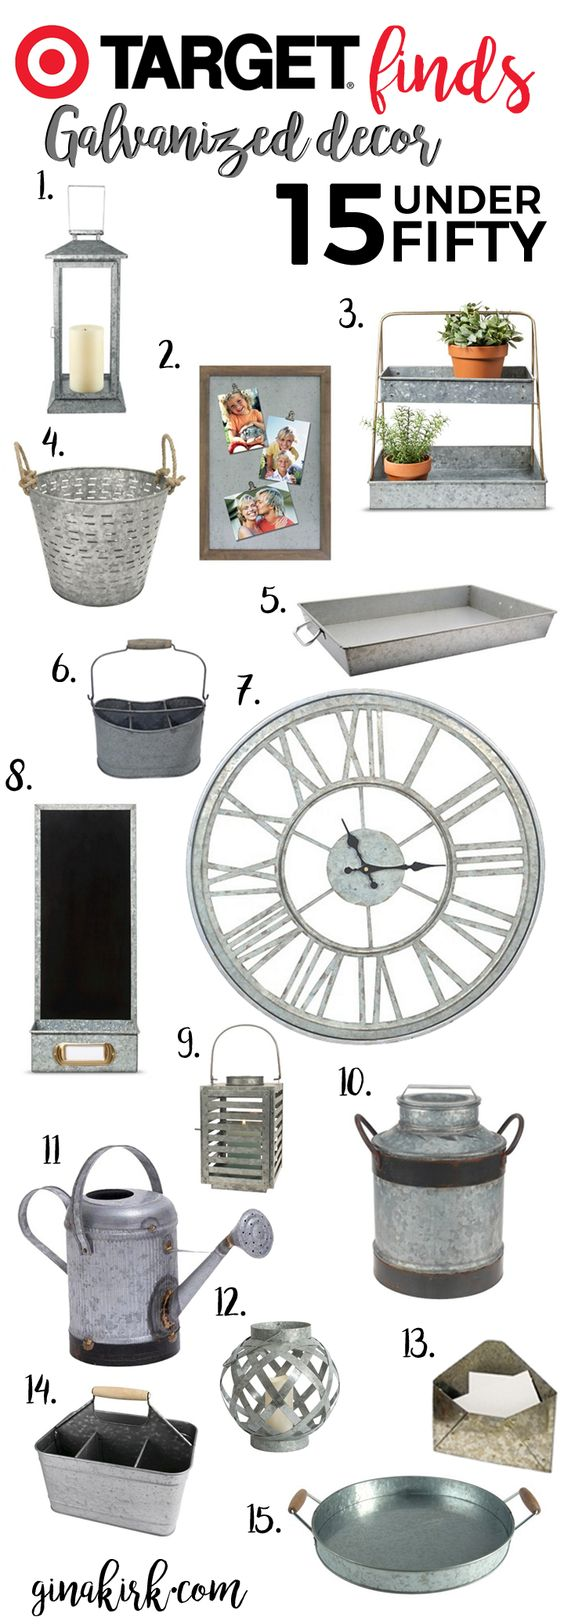 Pinterest the world s catalog of ideas for Bathroom accessories target